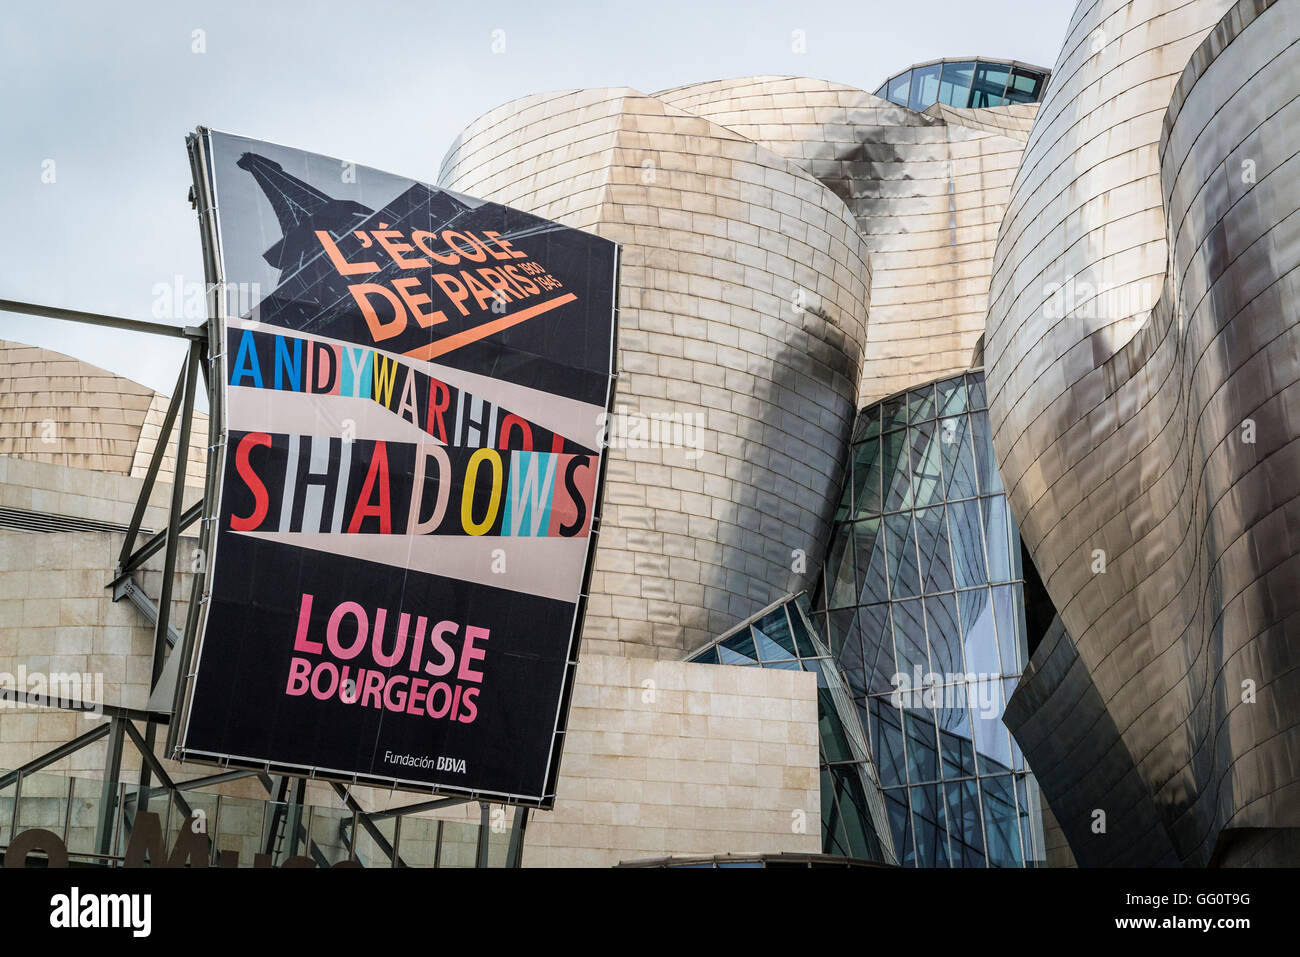 Louise Bourgeois exhibition, Guggenheim Museum, designed by Frank Gehry, Bilbao, Basque Country, Spain Stock Photo